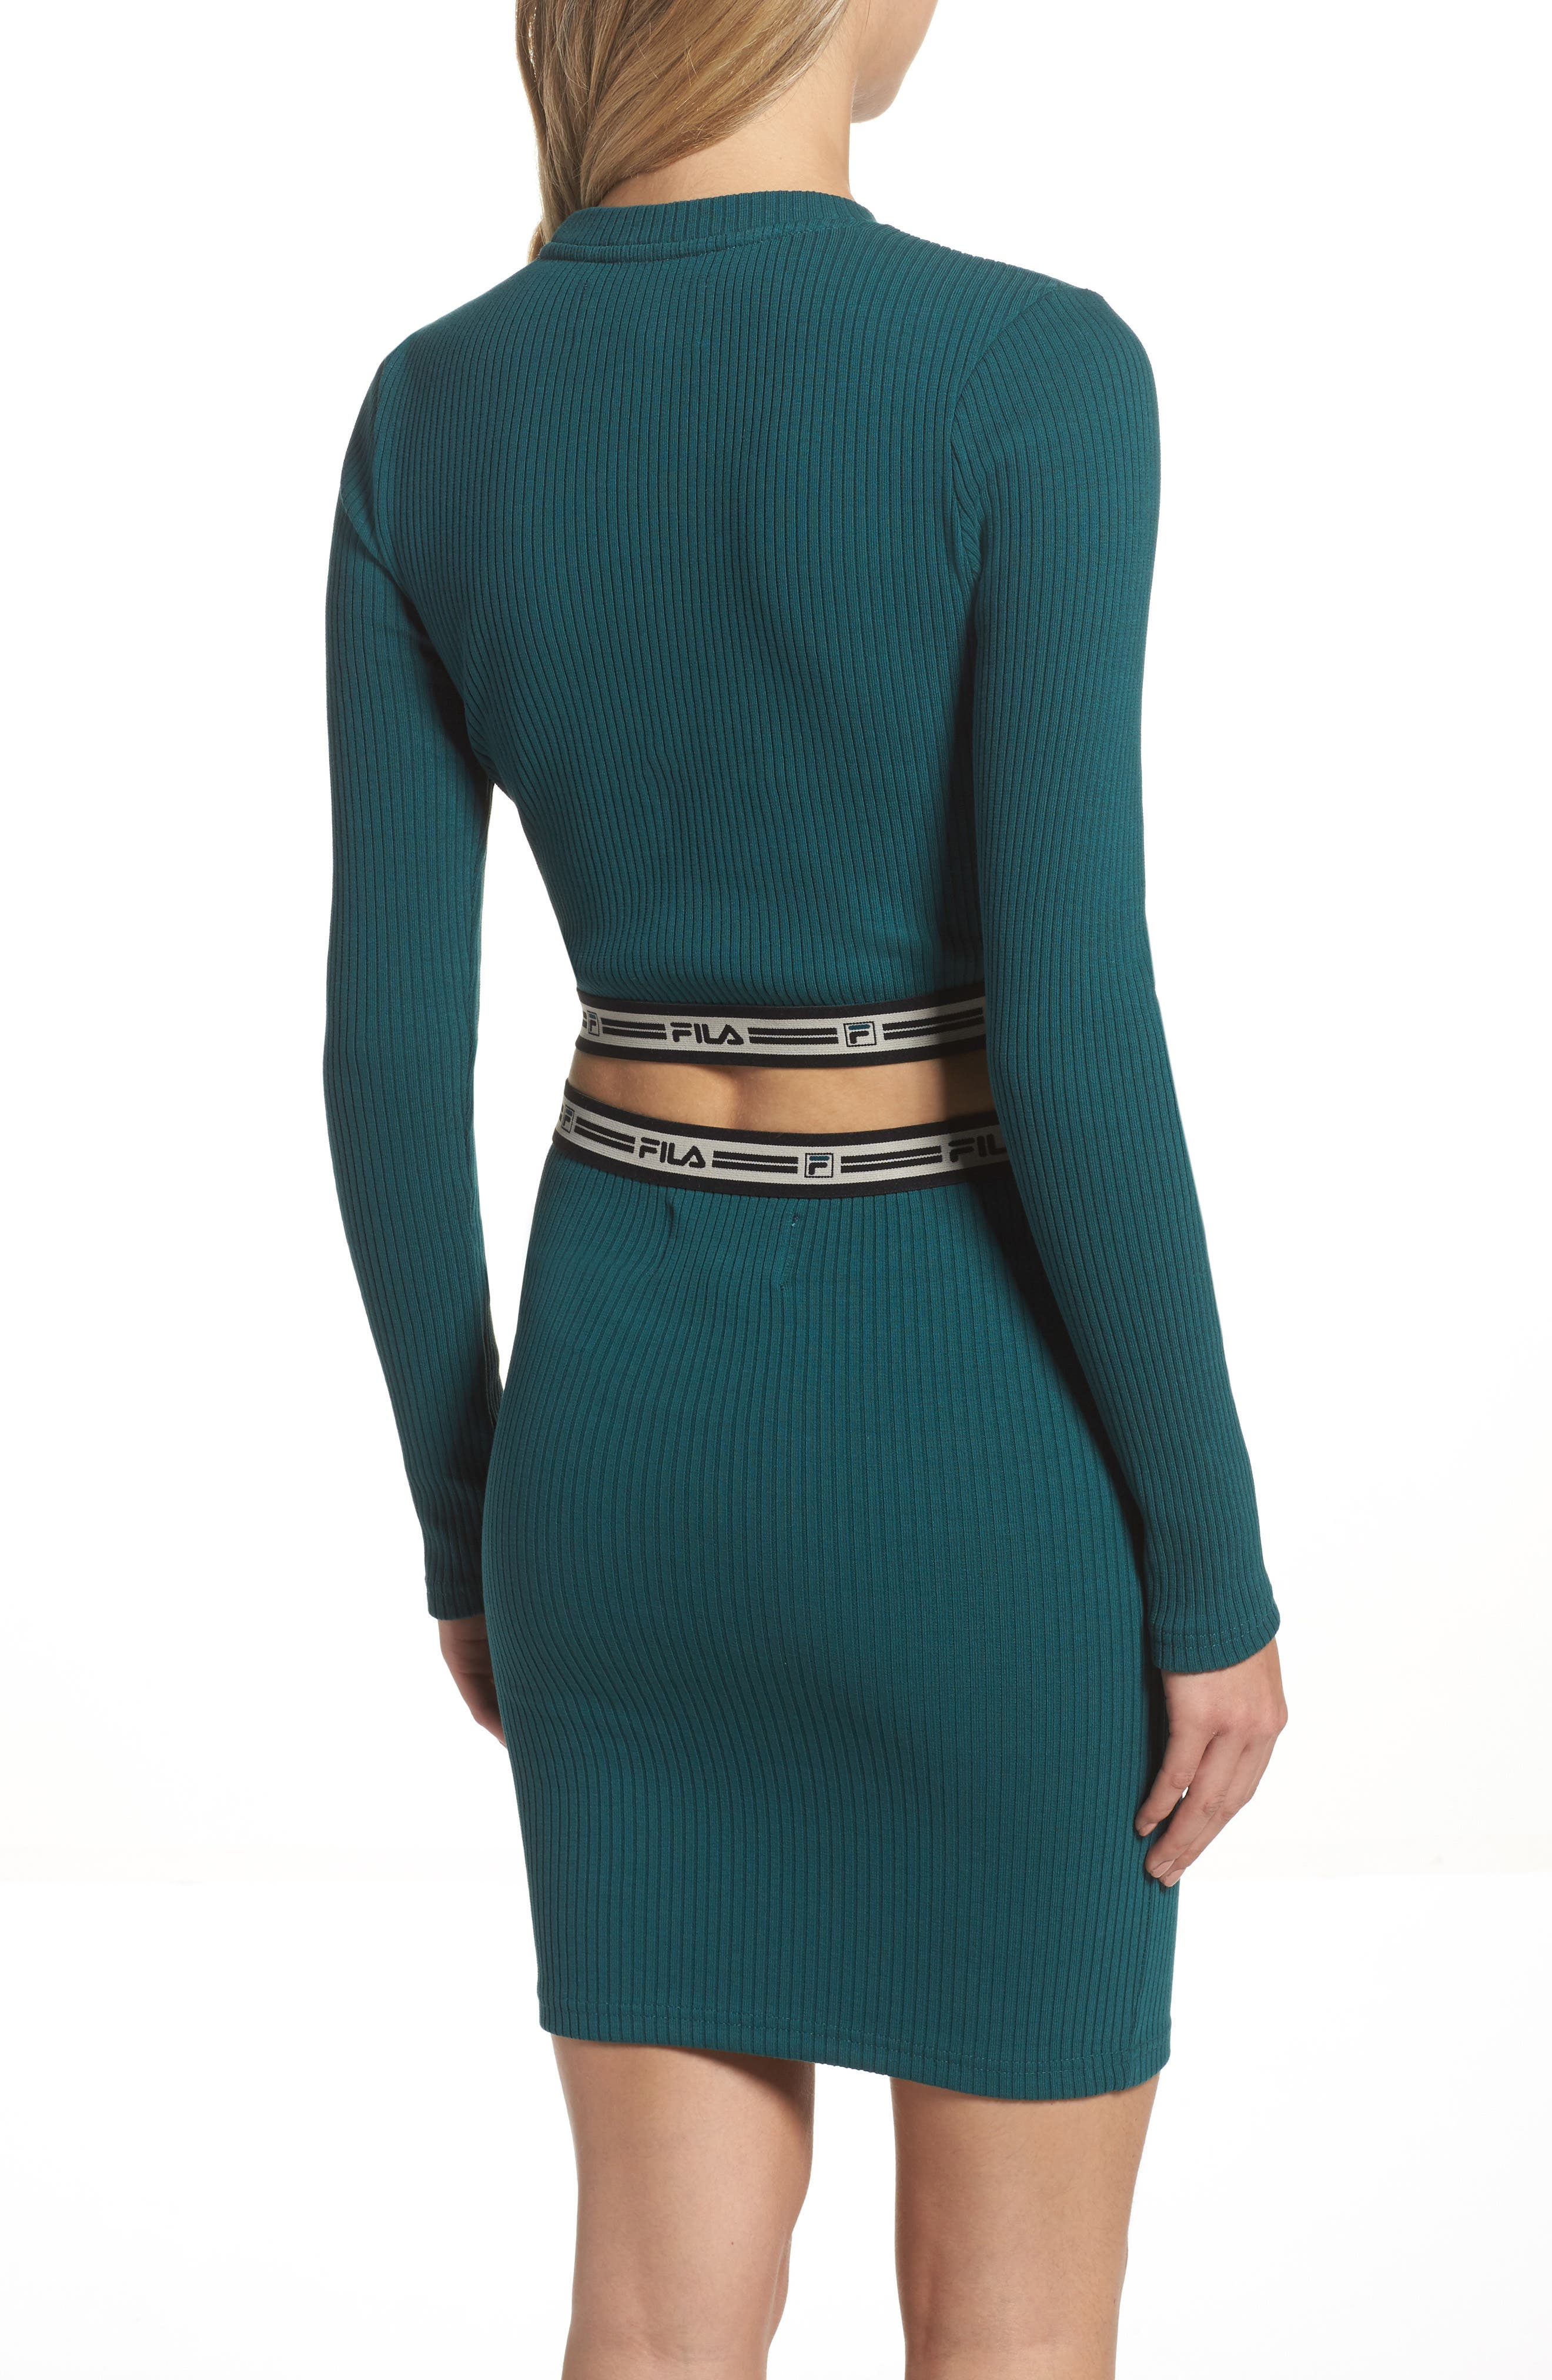 Colleen Long Sleeve Crop Top,                             Alternate thumbnail 2, color,                             440